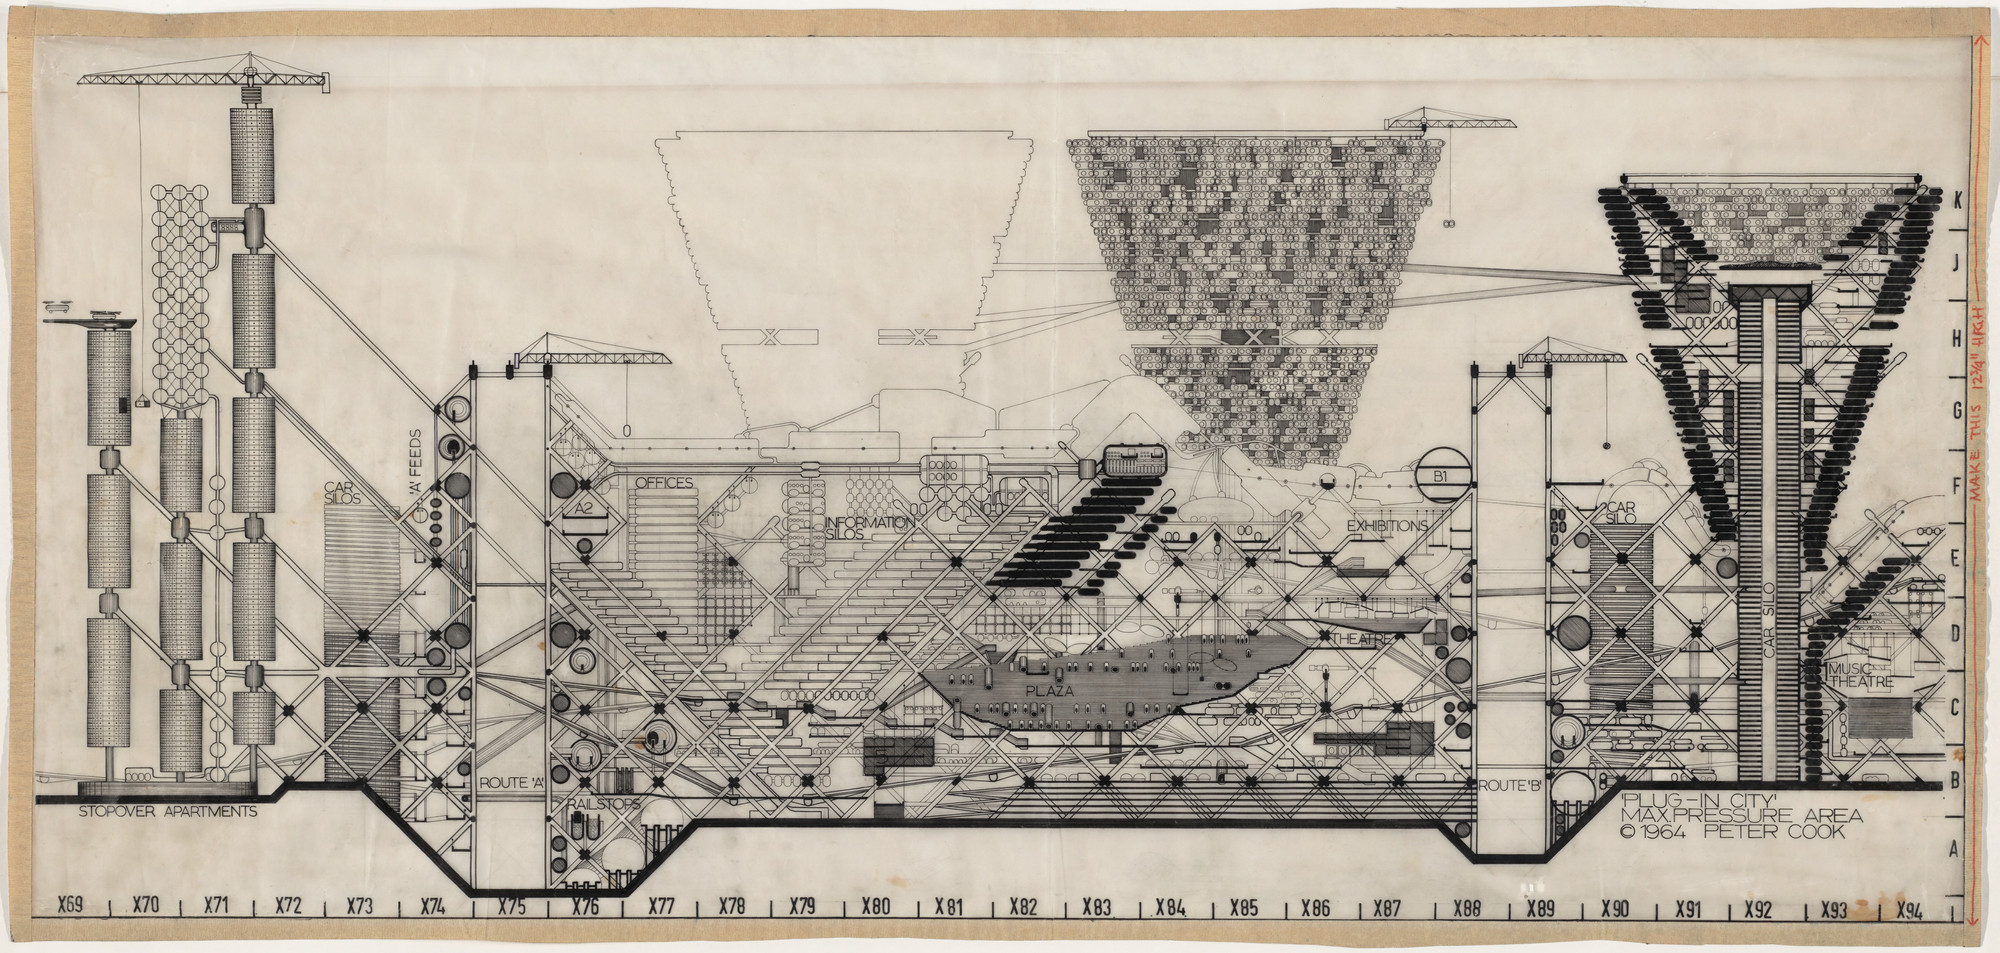 Peter Cook. Plug-in City: Maximum Pressure Area, project, Section. 1964